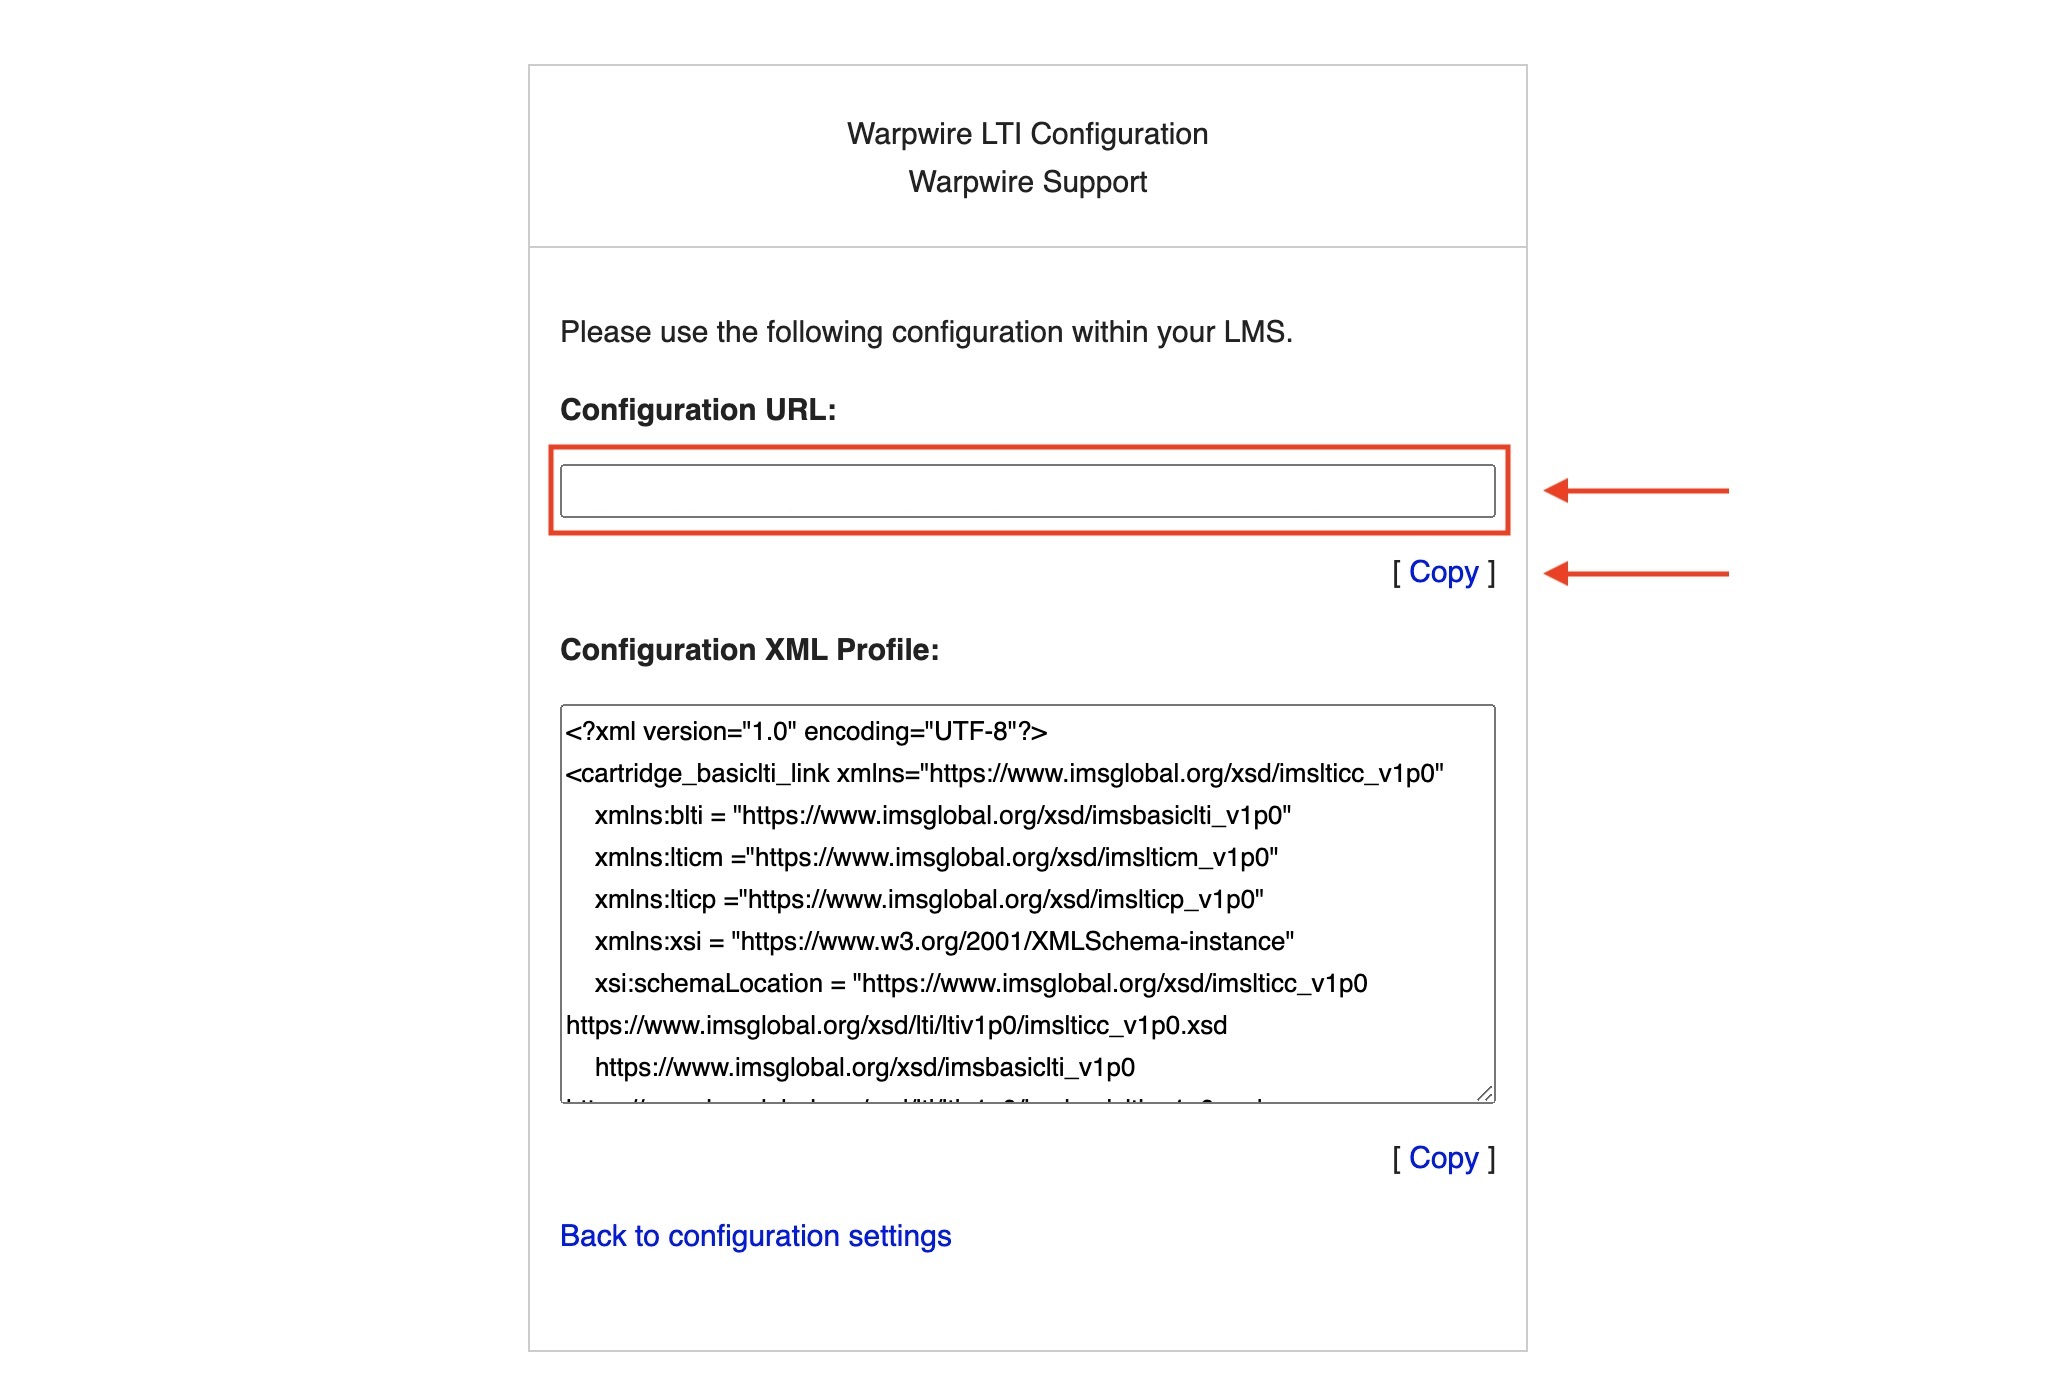 Copy the configuration URL